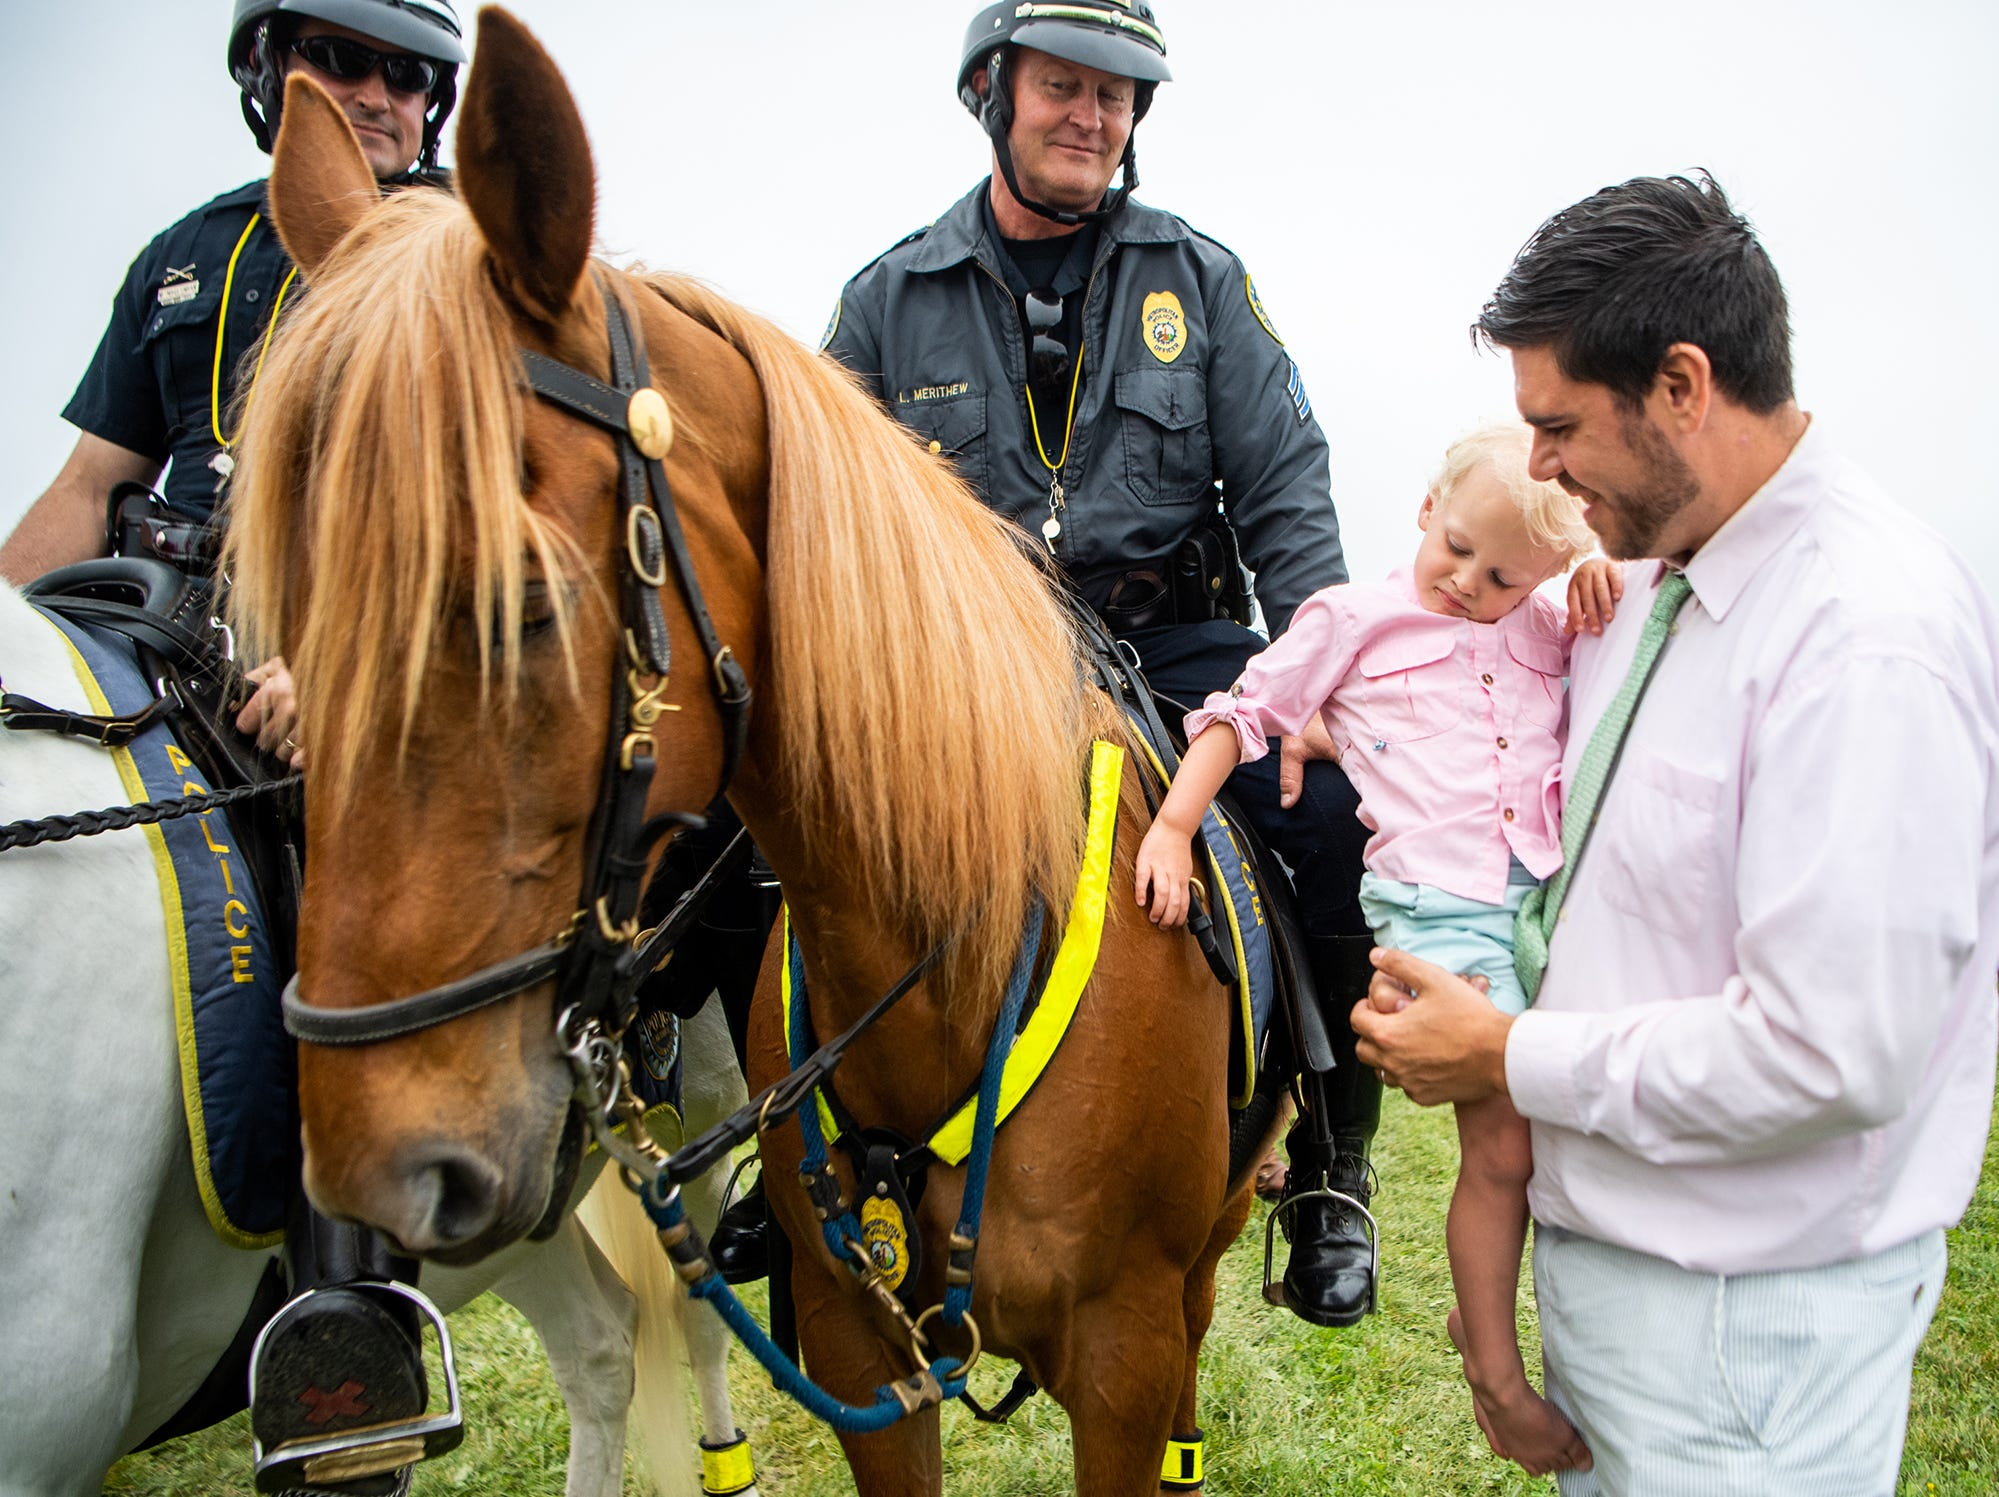 Brian Kelly holds his son Henry Knestrick, 3, to pet a police horse during the Iroquois Steeplechase at Percy Warner Park Saturday, May 11, 2019, in Nashville, Tenn.